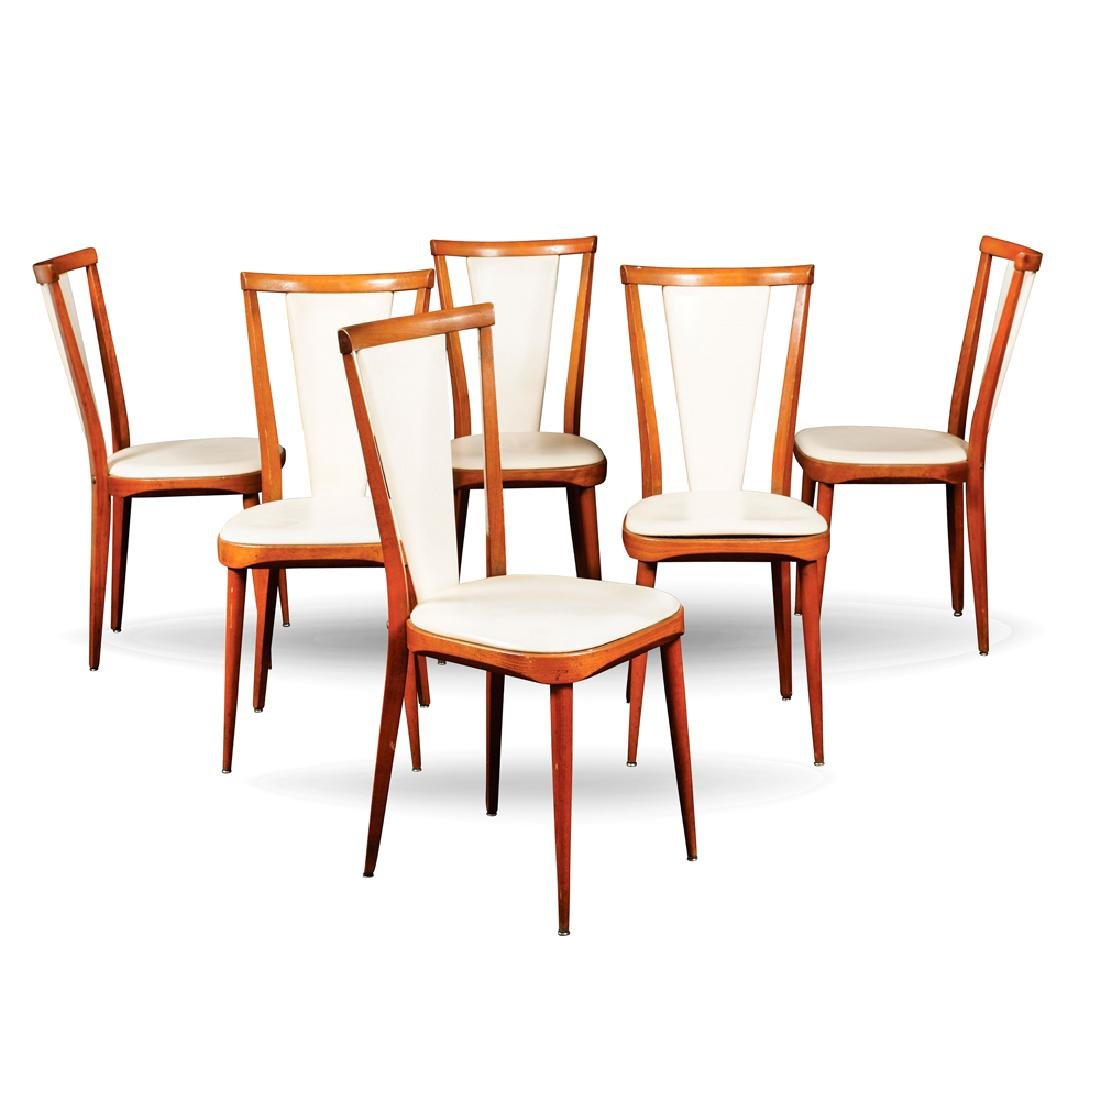 Set of six chairs France 20th century h. 92 cm.